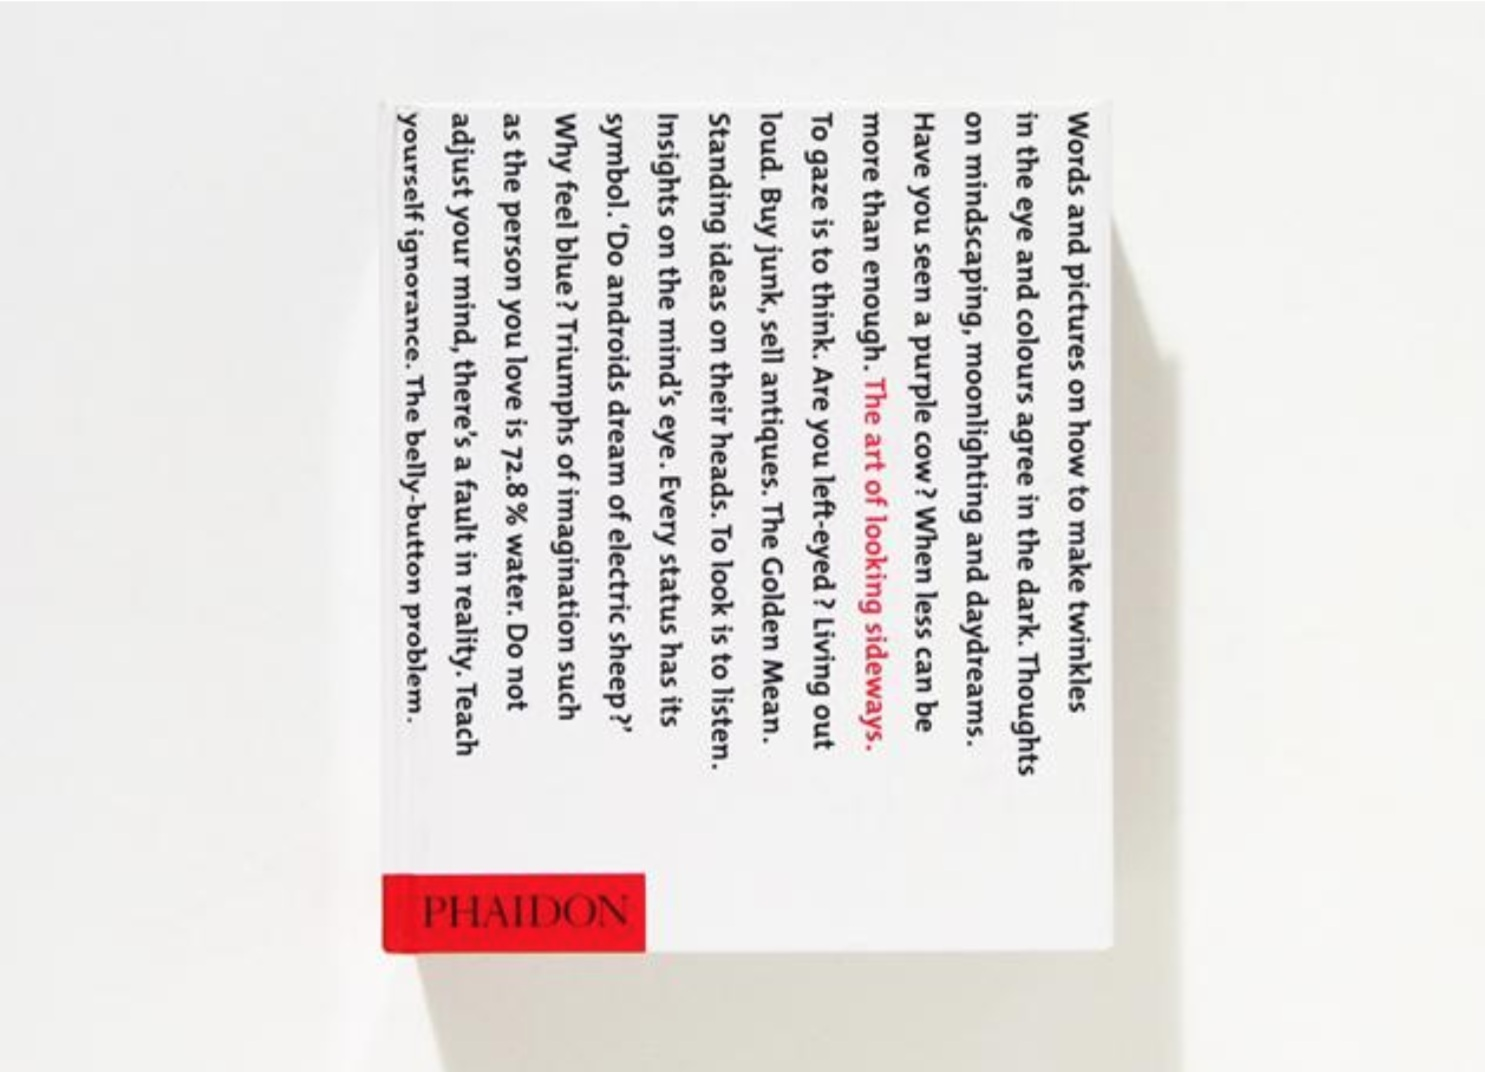 Figure 15. The Art of Looking Sideways, Front Cover Phaidon Press